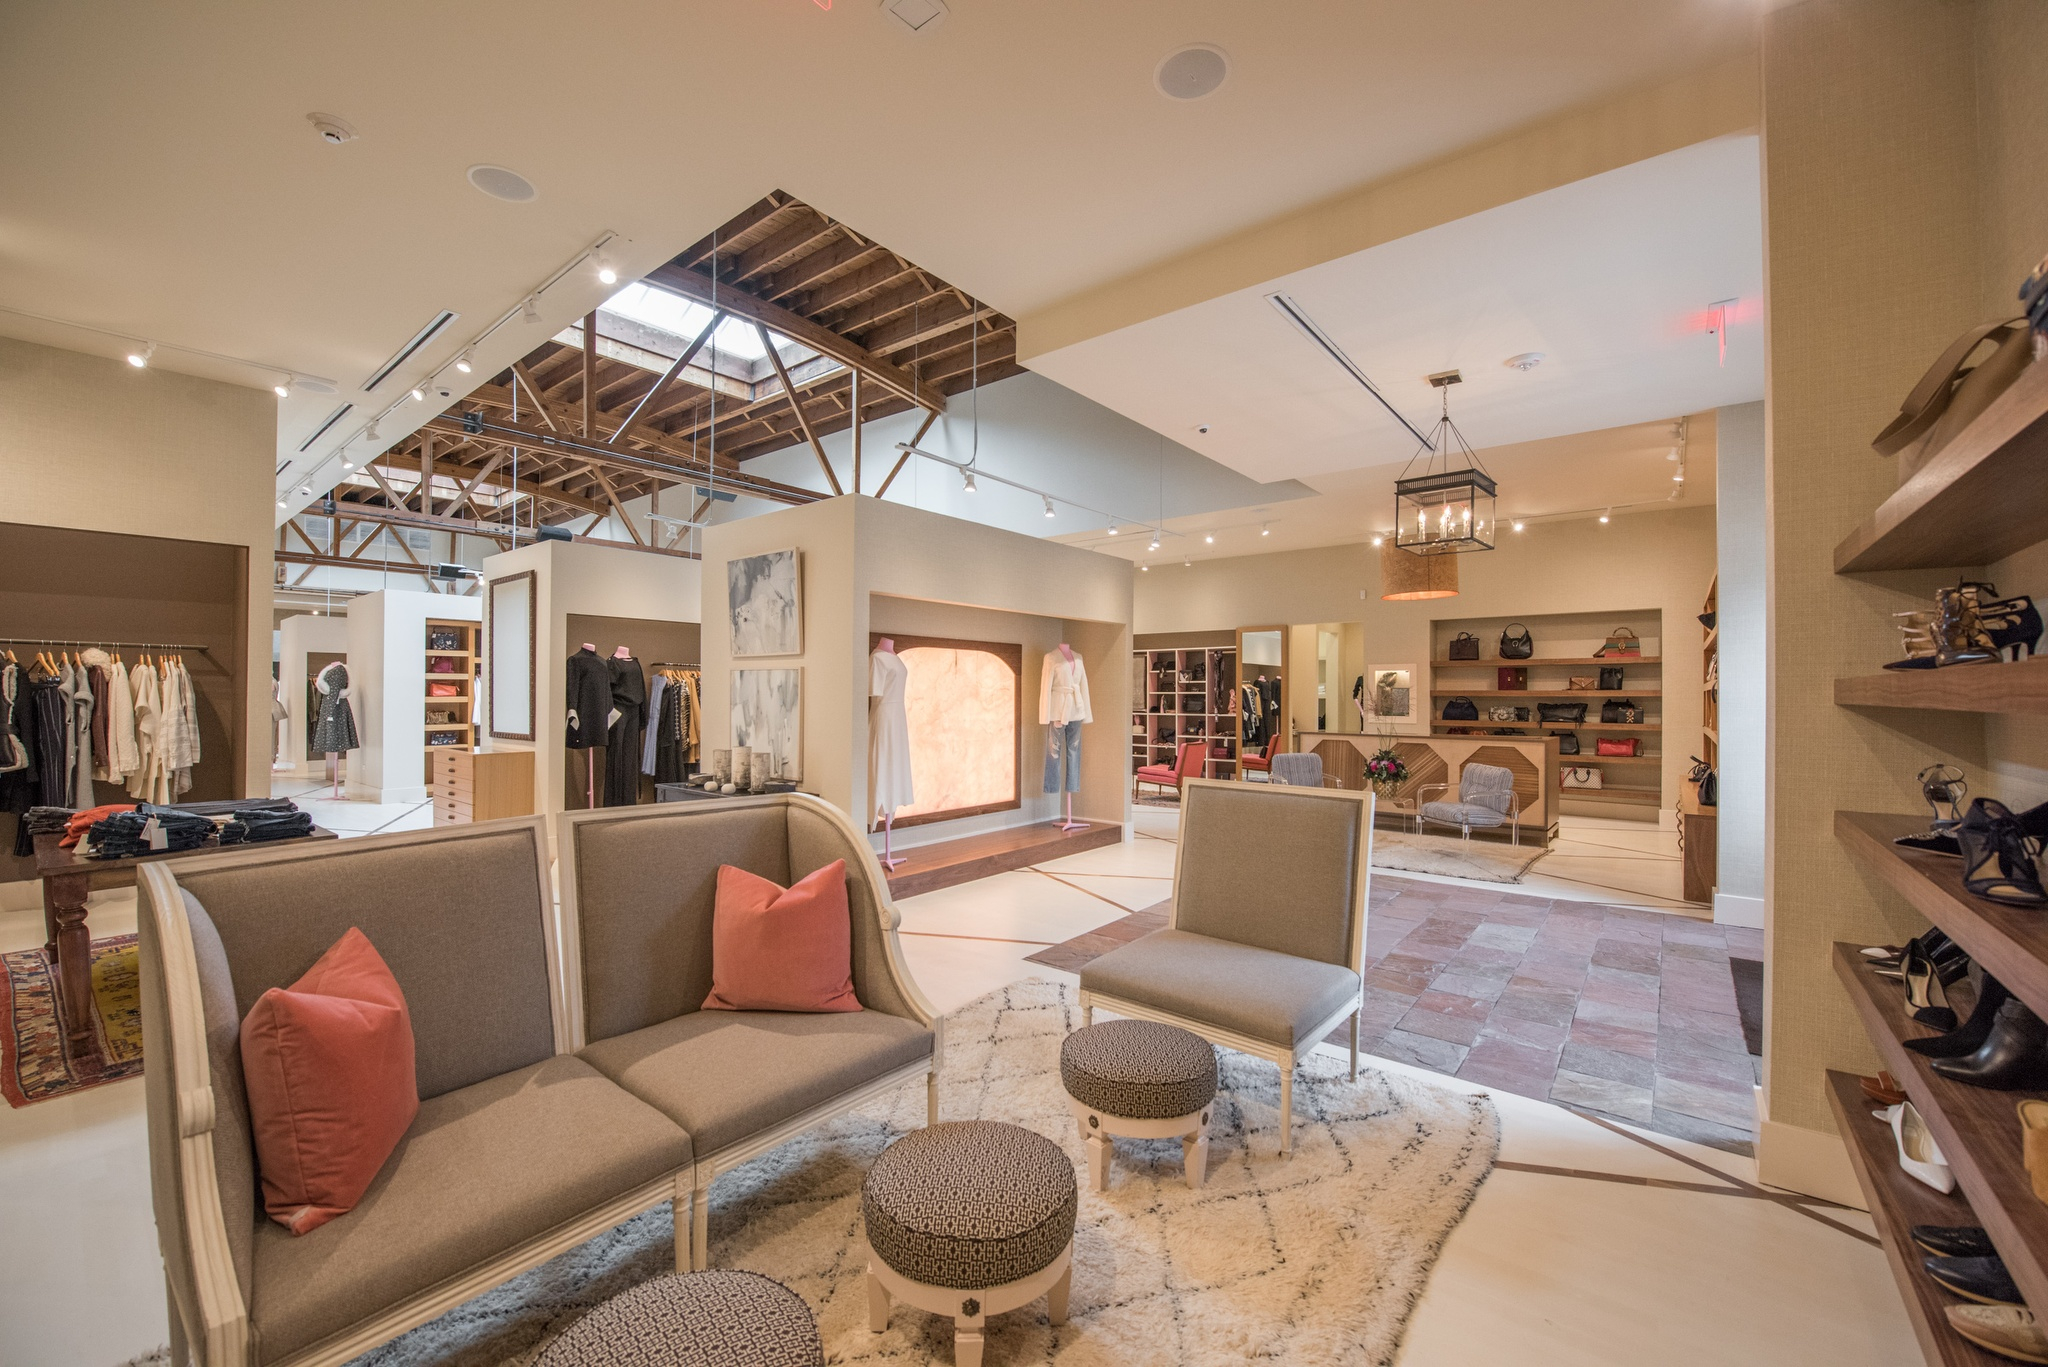 The interior of Neapolitan Collection.